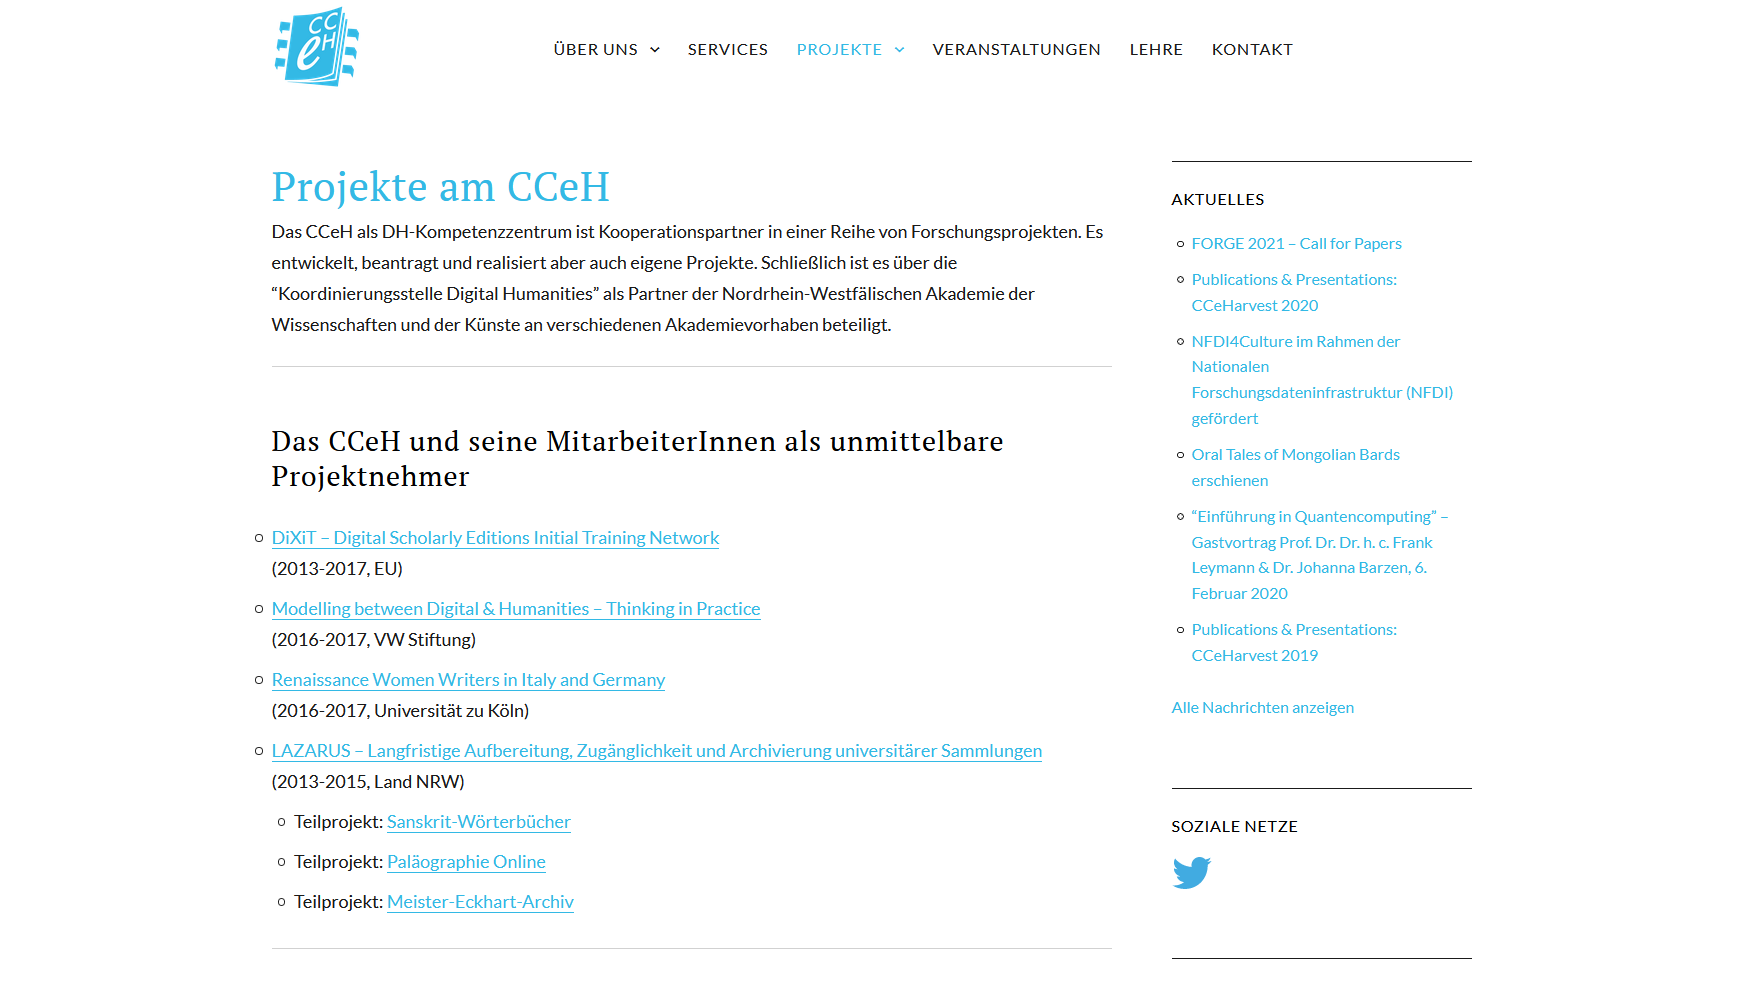 screenshot of the old CCeH website, projects list, 23 june 2021